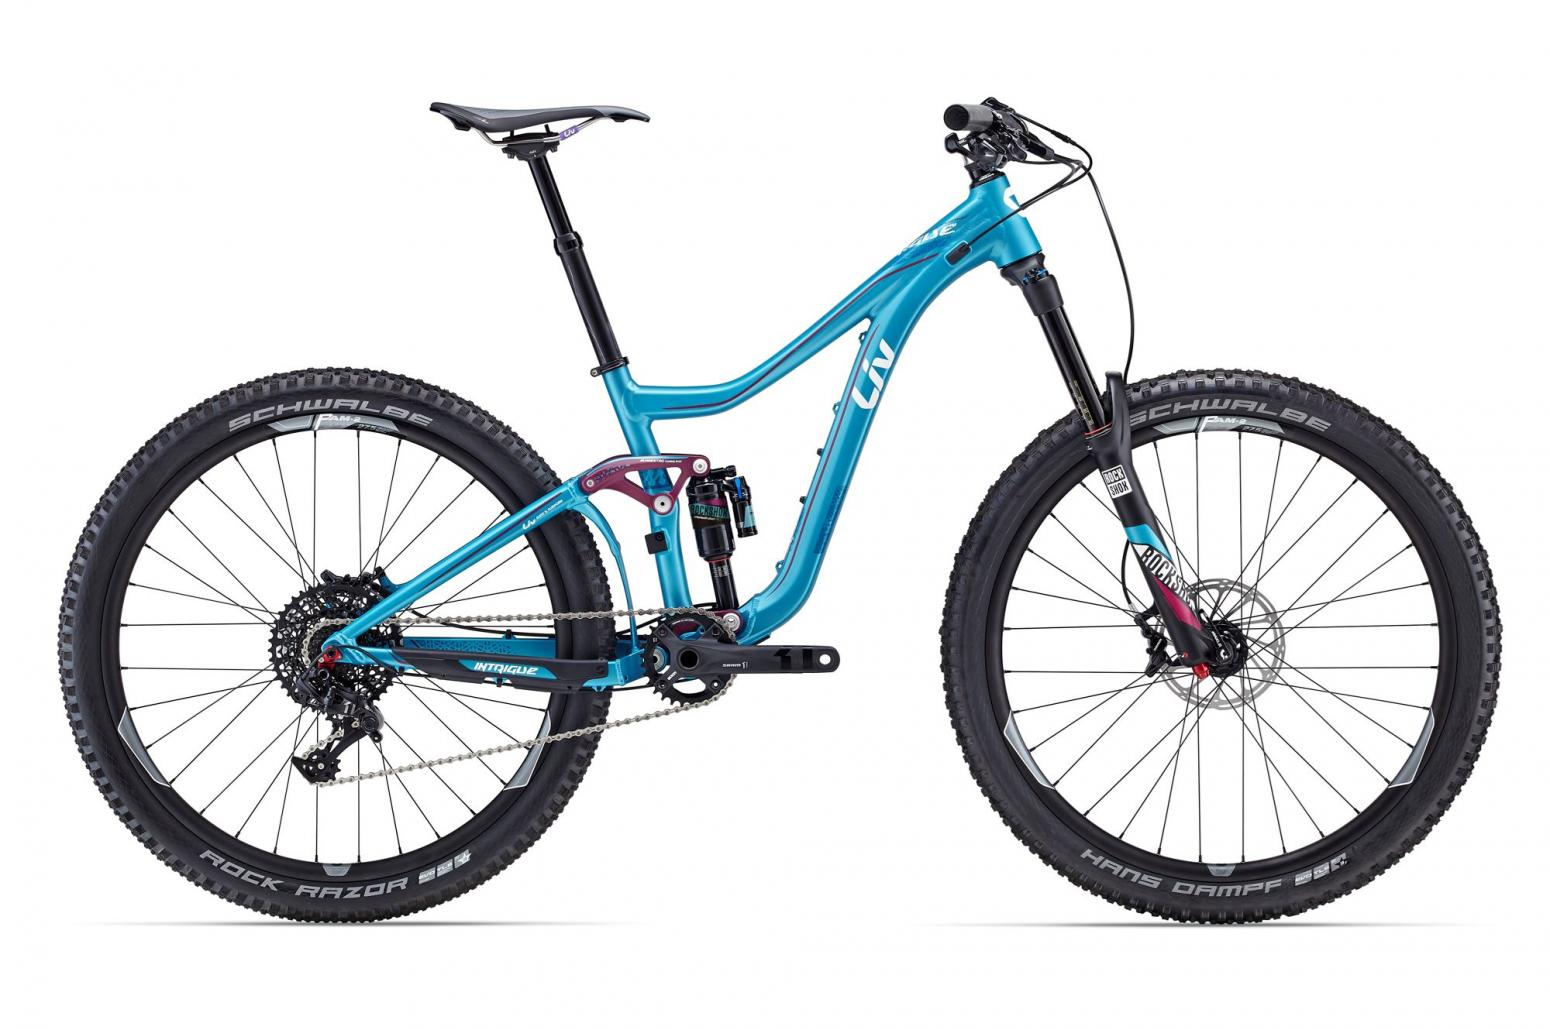 LIV / Giant MTB Women Allmountain/Trail Intrigue 27.5 SX 2016